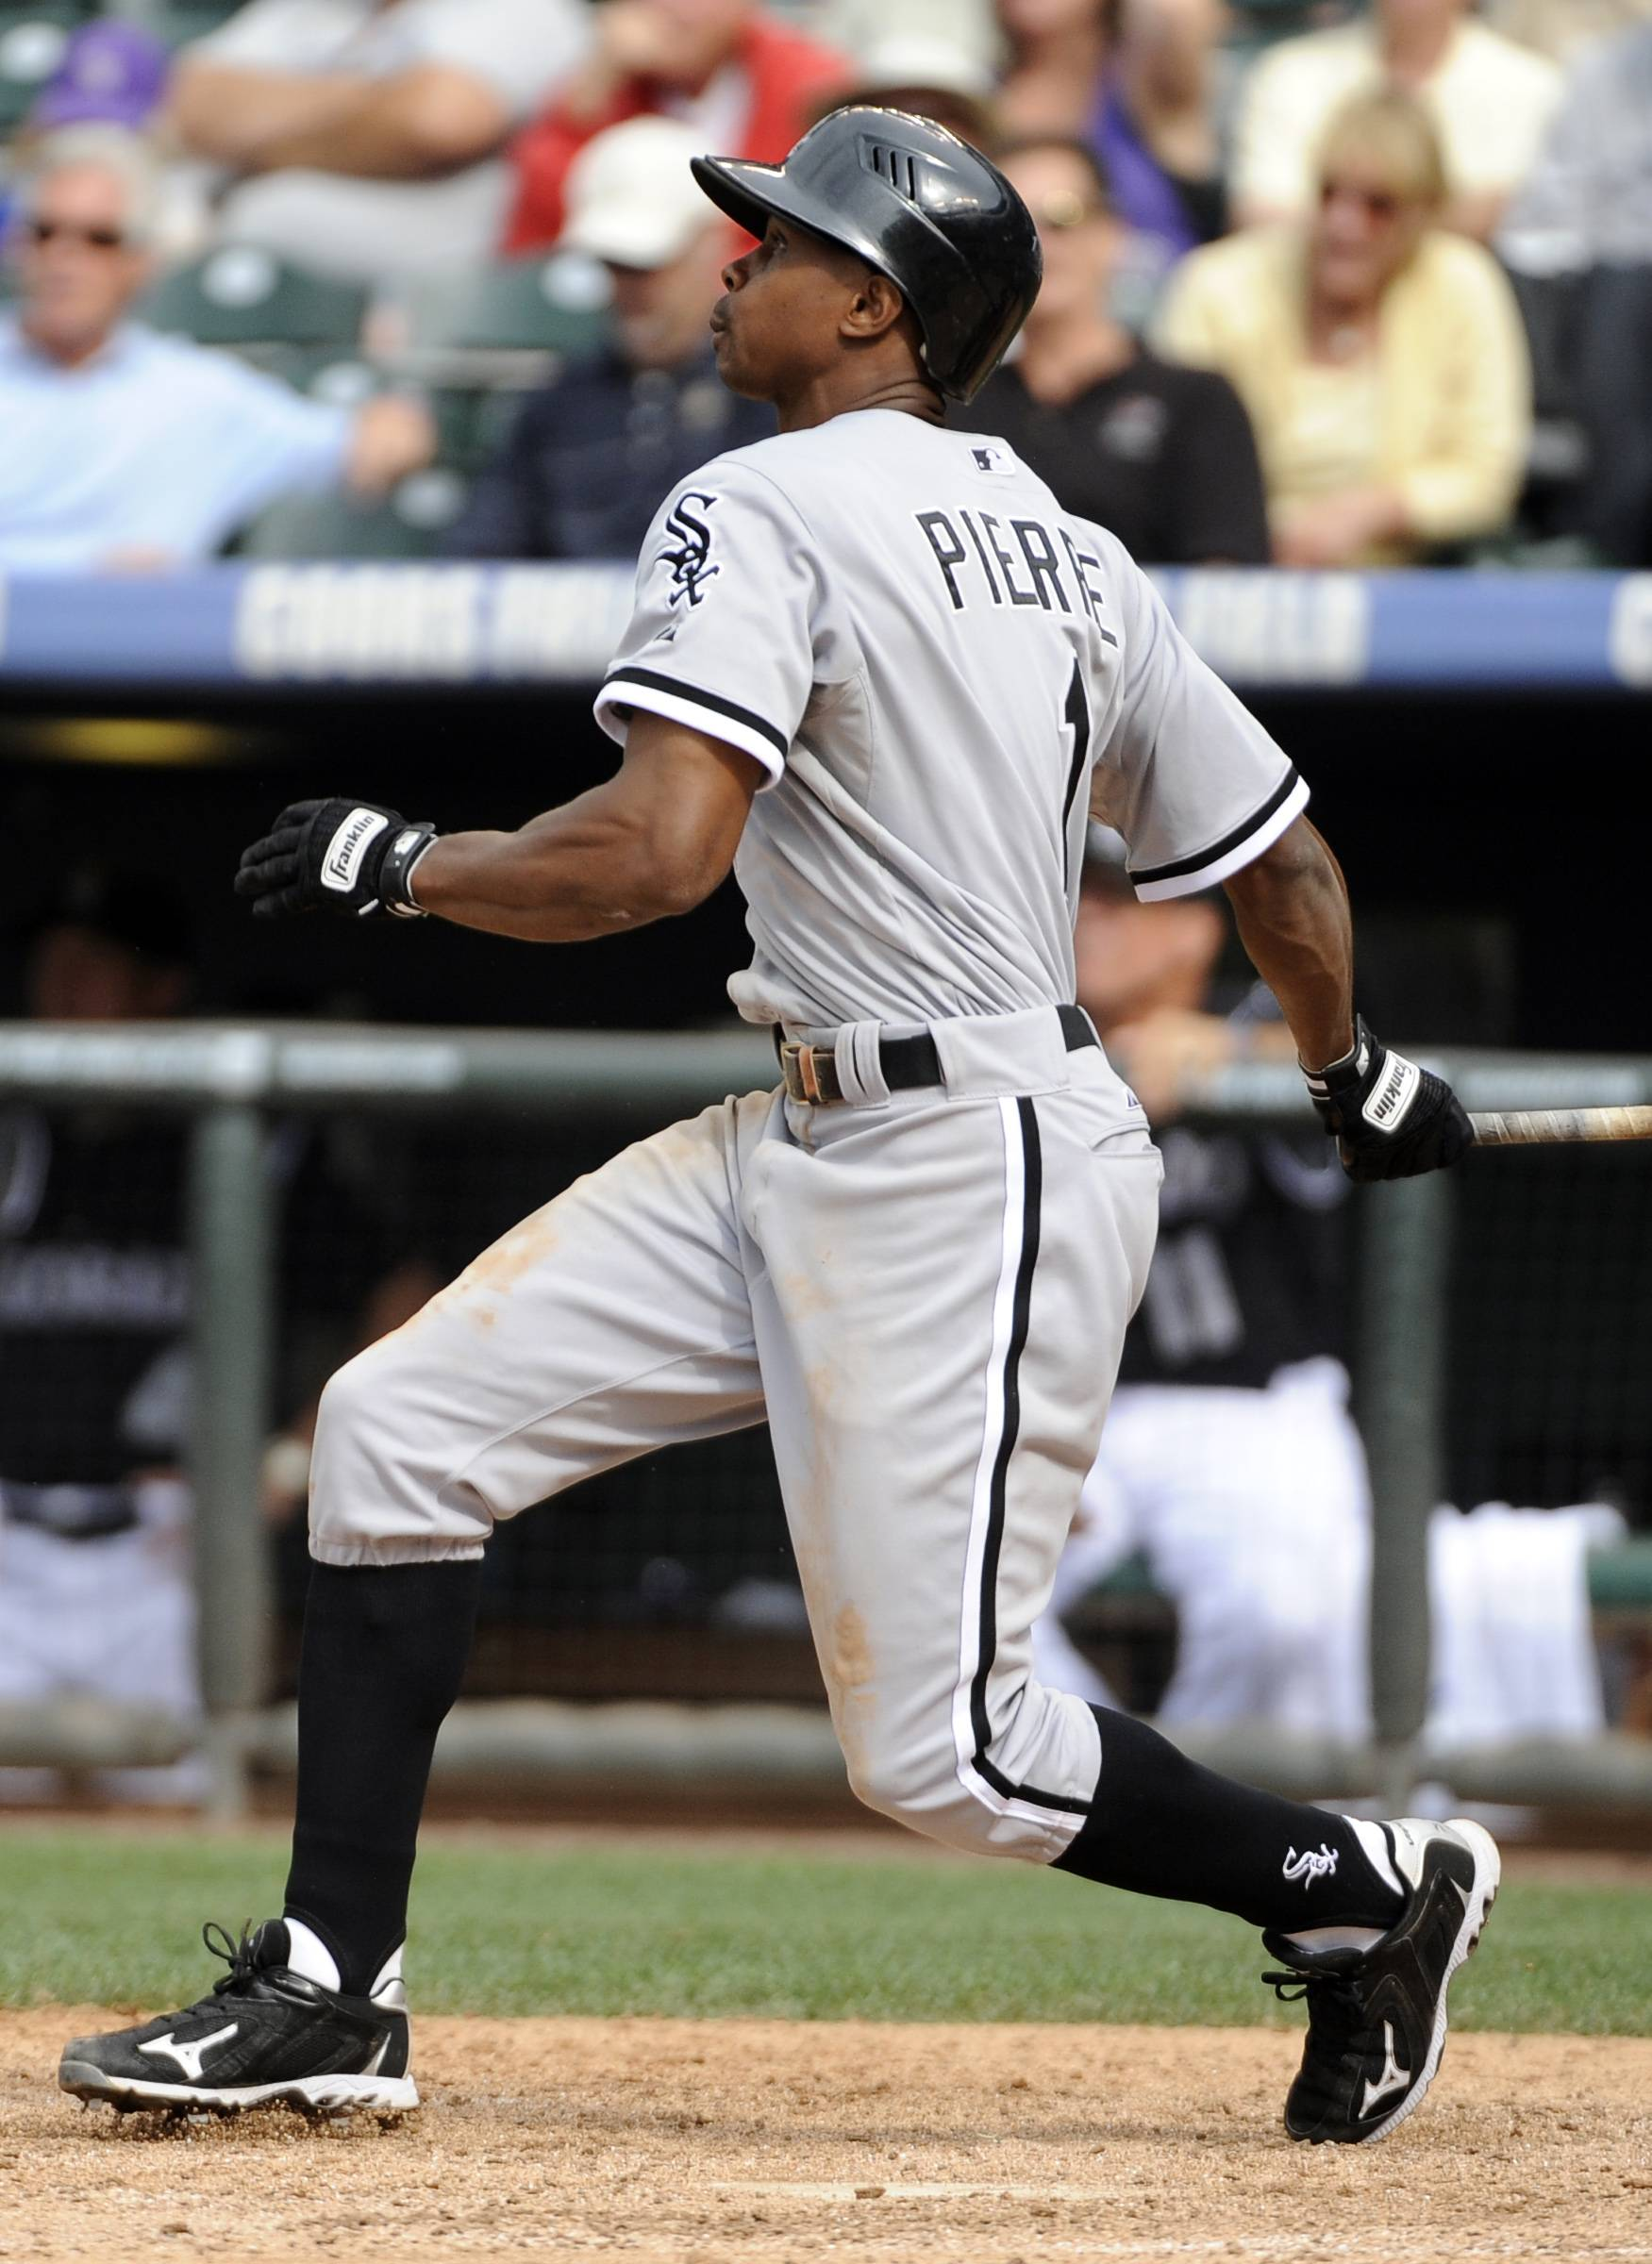 Juan Pierre hits a two-run double against the Colorado Rockies during the 10th Thursday in Denver.